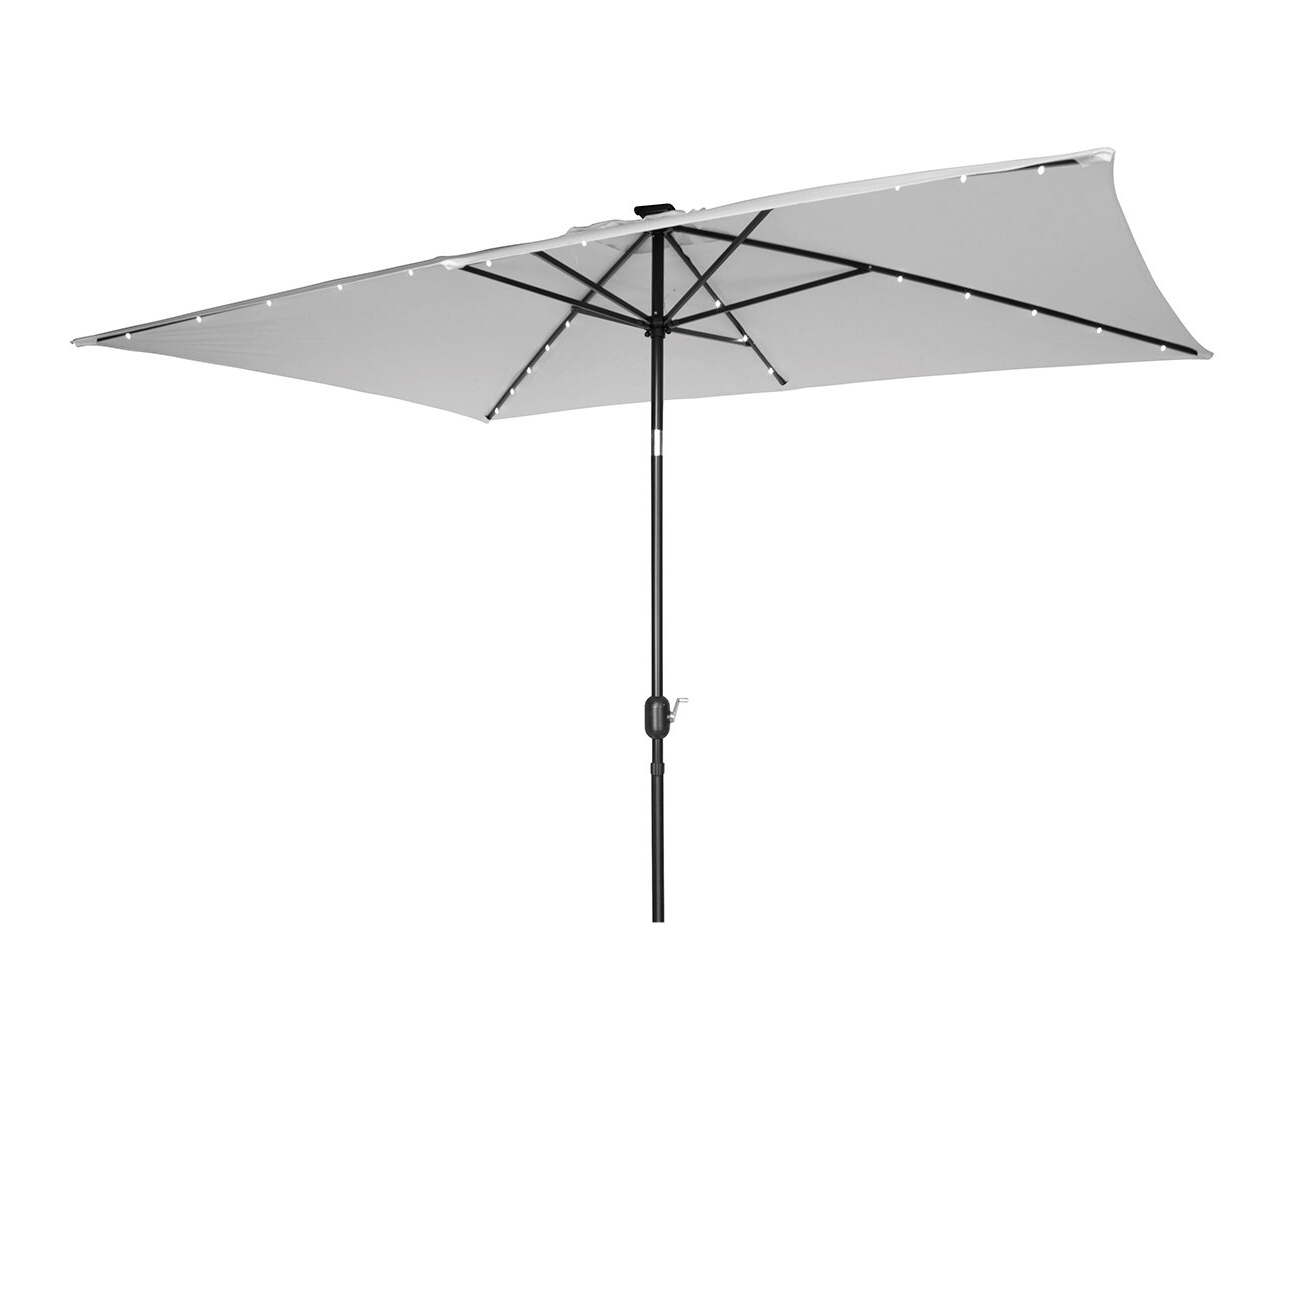 Cordelia Rectangular Market Umbrellas In 2020 Bangert 10' X (View 19 of 20)